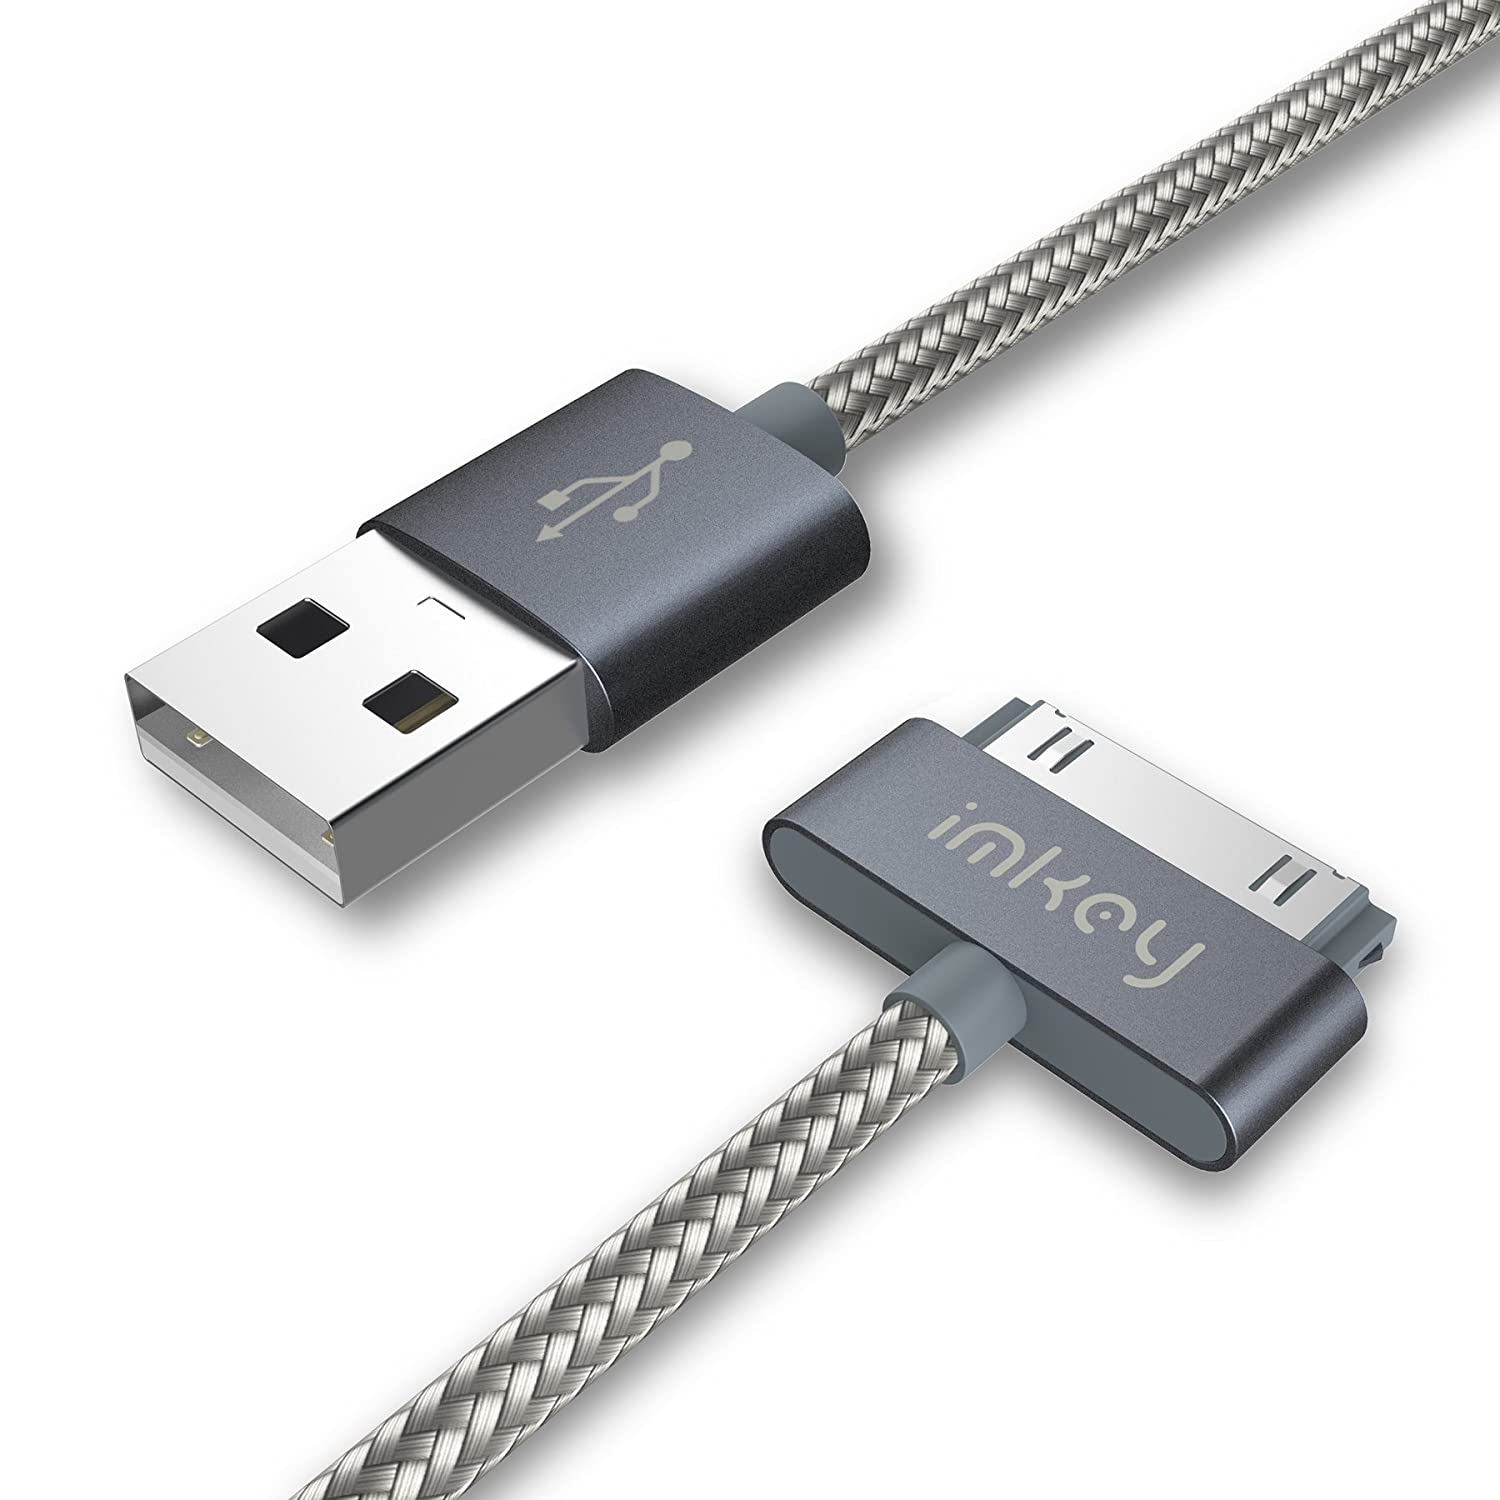 IMKEY Apple Certified 6.5 Feet 30-Pin To USB Sync and Charging Cable for iPhone 4 / 4S, iPhone 3G / 3GS, iPad 1 / 2 / 3, iPod - (Gray)